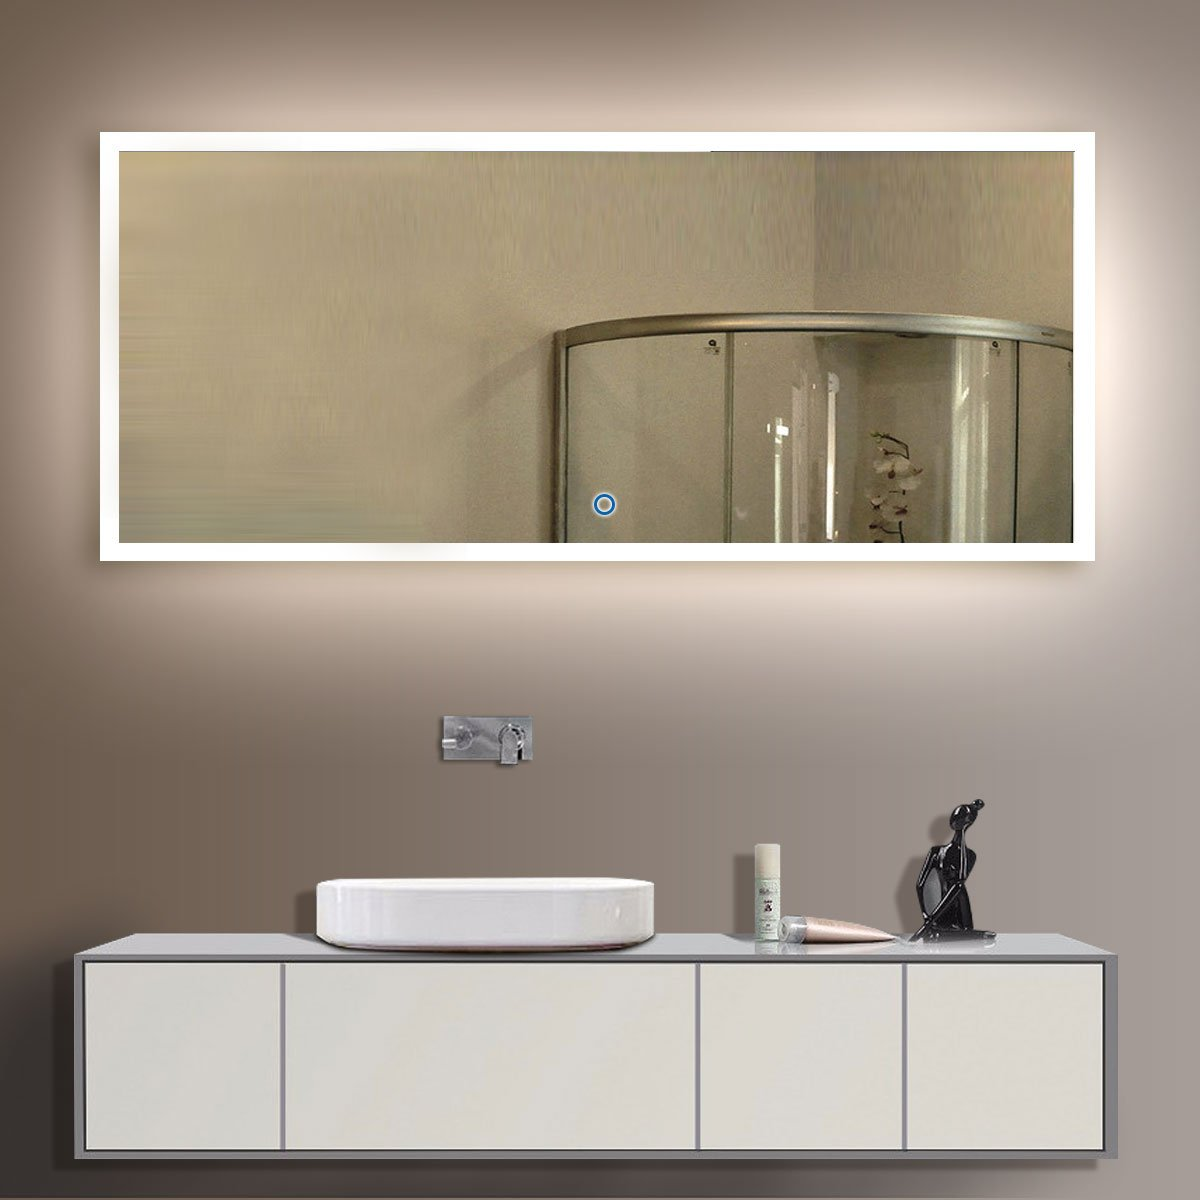 D-HYH LED 84 x 40 In Decorative Bathroom Silvered Mirror with Touch Button (N031-A) by D-HYH